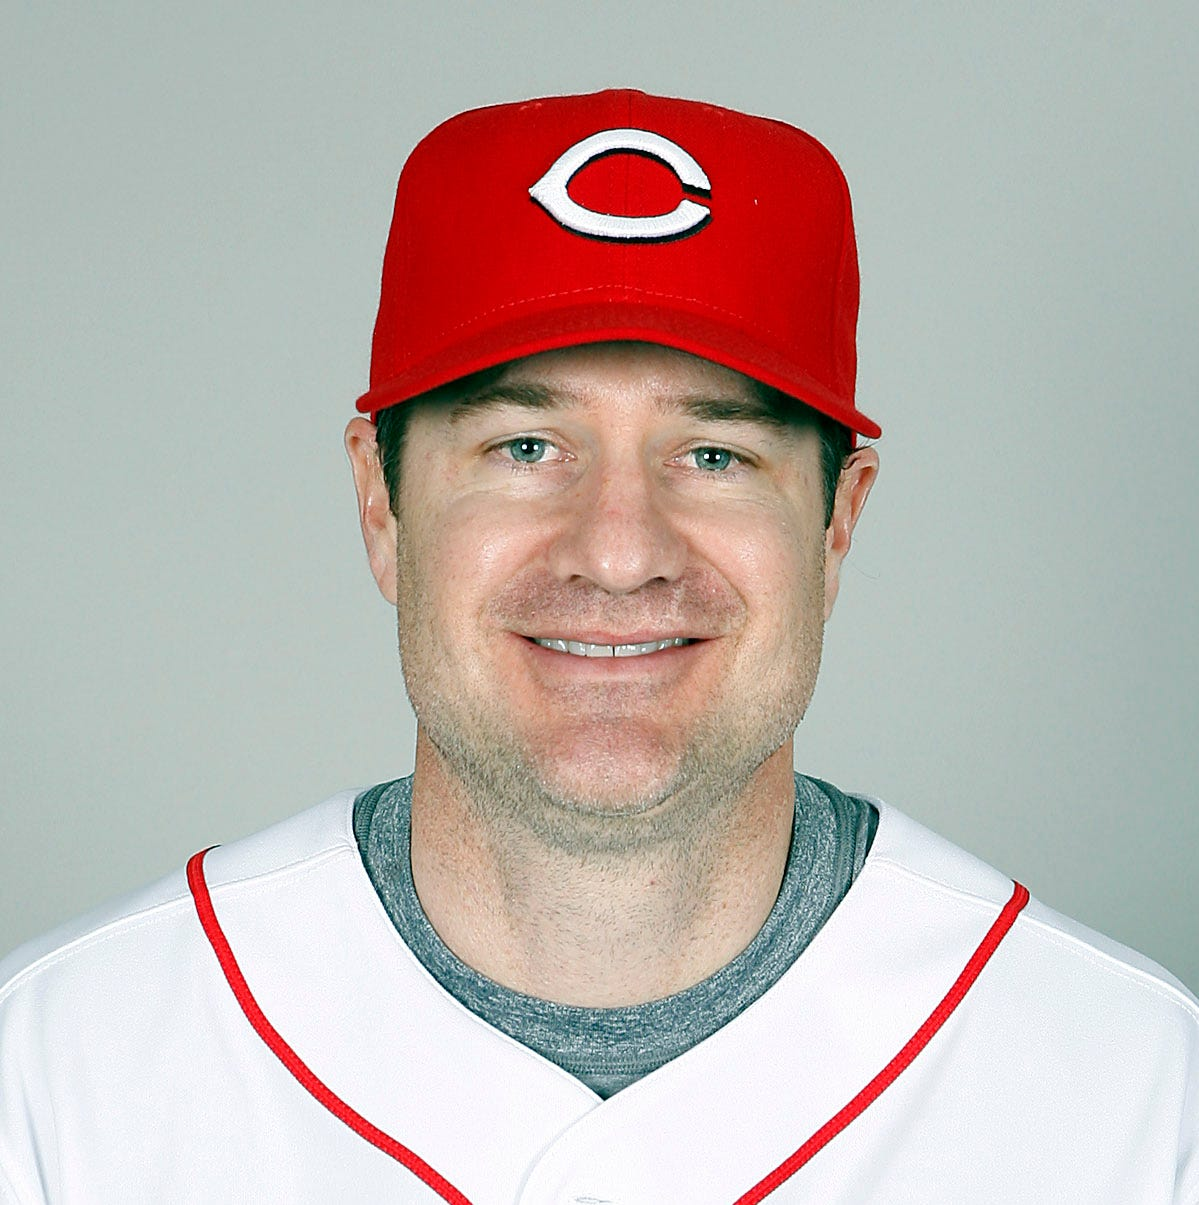 Paul Daugherty: New Cincinnati Reds manager David Bell has to 'get his organization working and thinking as one'